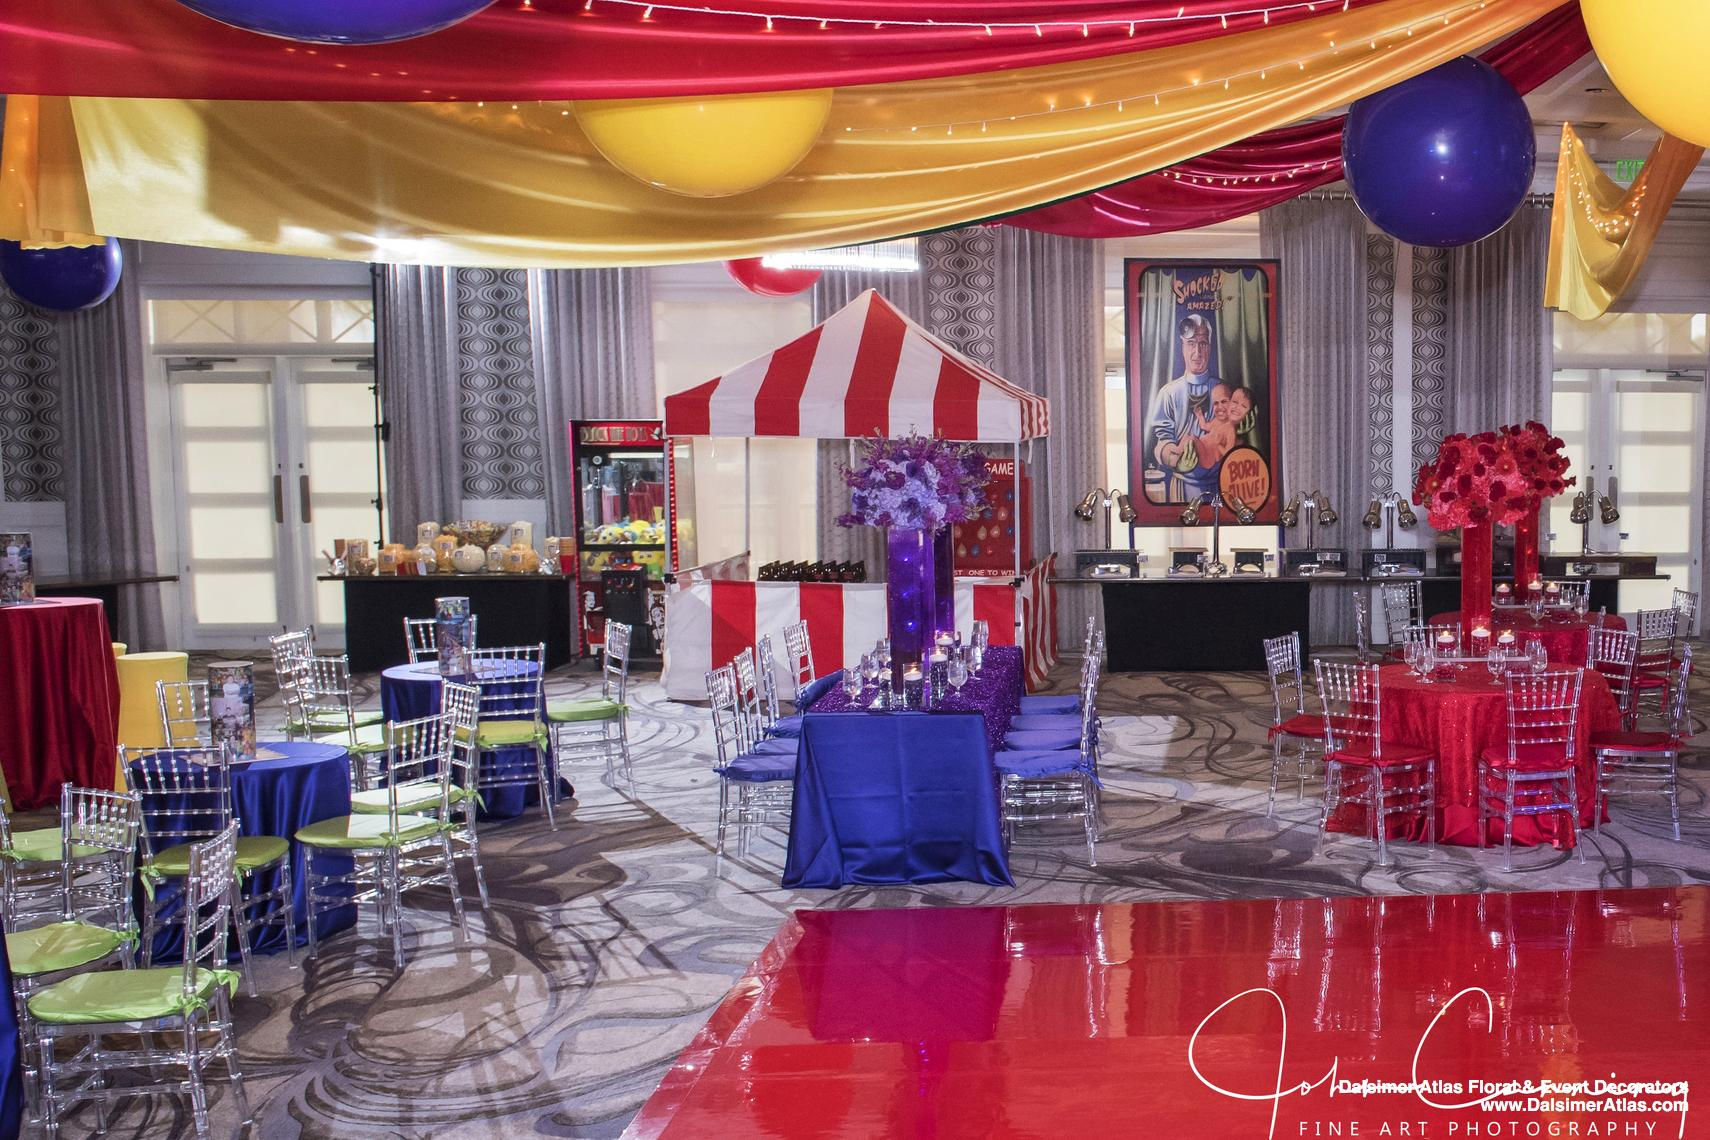 mitzvah-theme-decorations-bar-mitzvah-woodfield-country-club-boca-raton-florida-dalsimer-atlas-052218-42